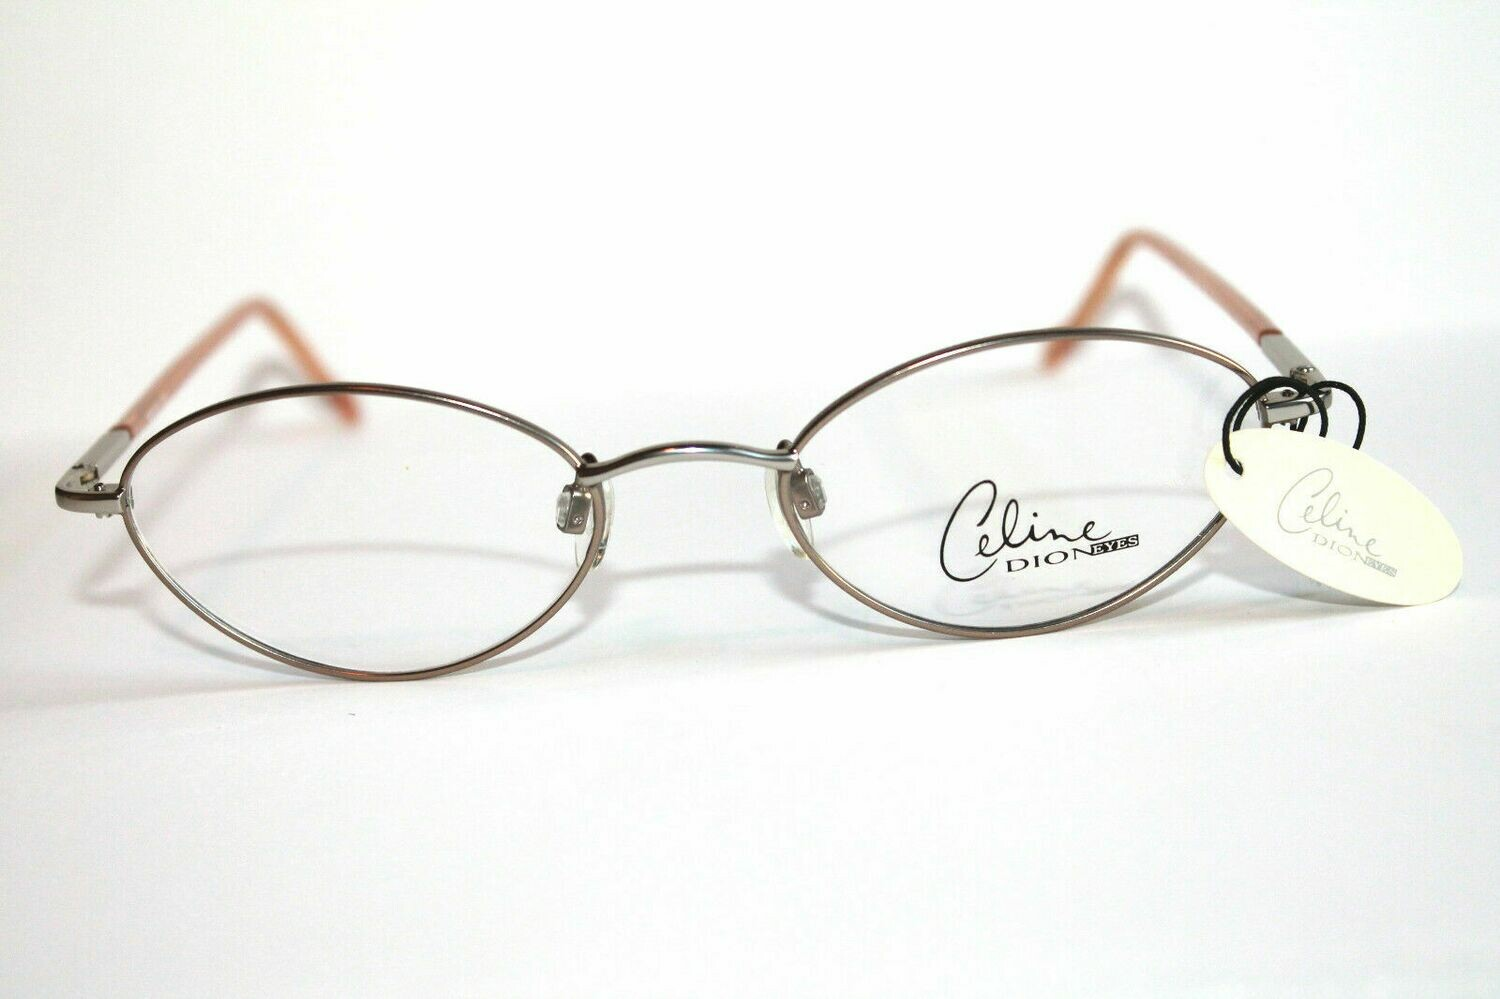 5 Pair Authentic & New Celine Dion eyeglass frames 3 Colors one Style